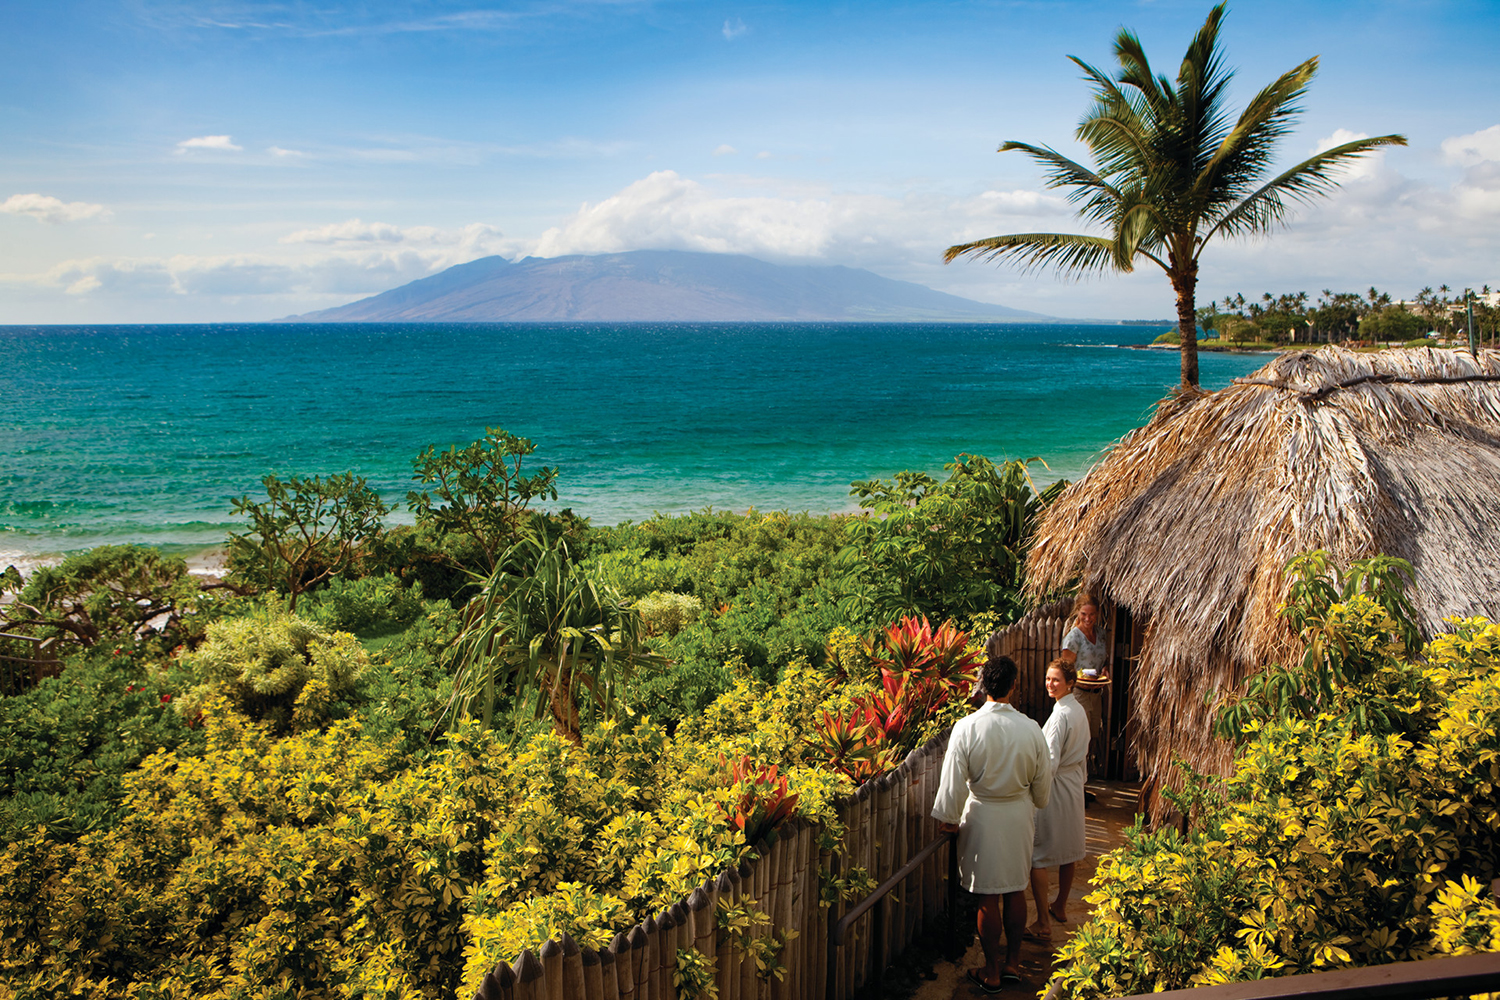 The Spa at Four Seasons Resort Maui at Wailea has oceanside hales (thatched huts). [Image courtesy of Four Seasons Resort Maui]